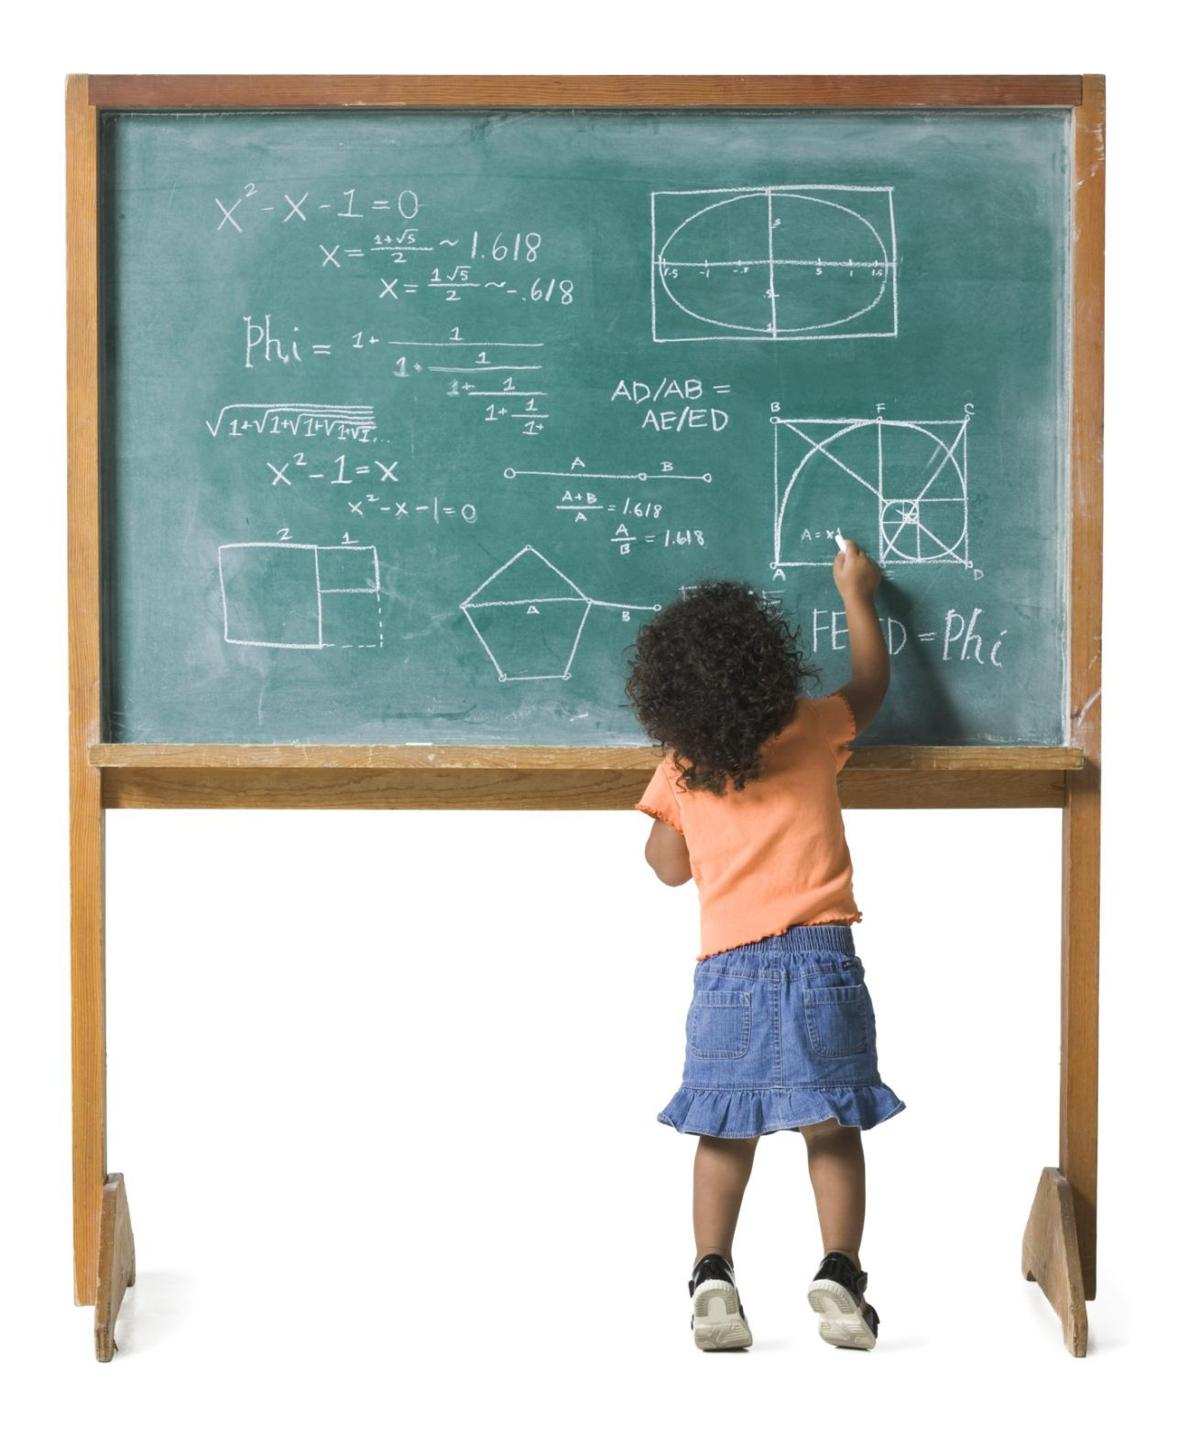 Our view: Evidence trumps ideology in classroom